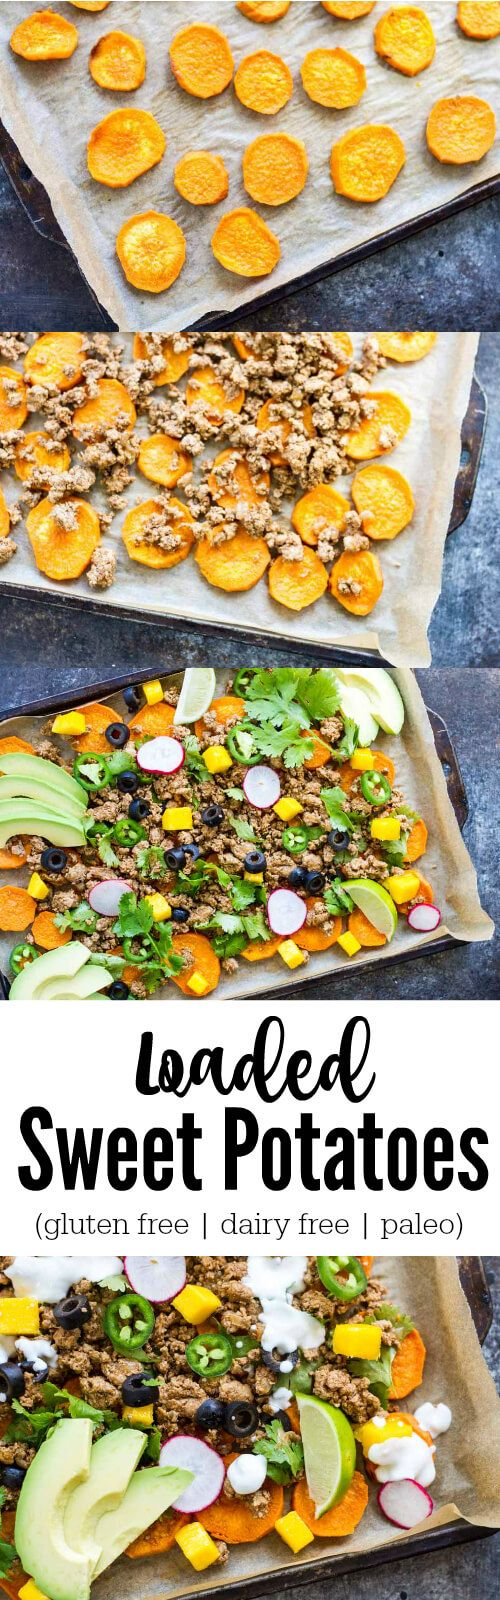 Dig into some healthy comfort food with these savory and satisfying Loaded Sweet Potatoes. Kind of like nachos but not. Loaded with all the things. Dairy free. Gluten free. Paleo. Whole30 compliant.